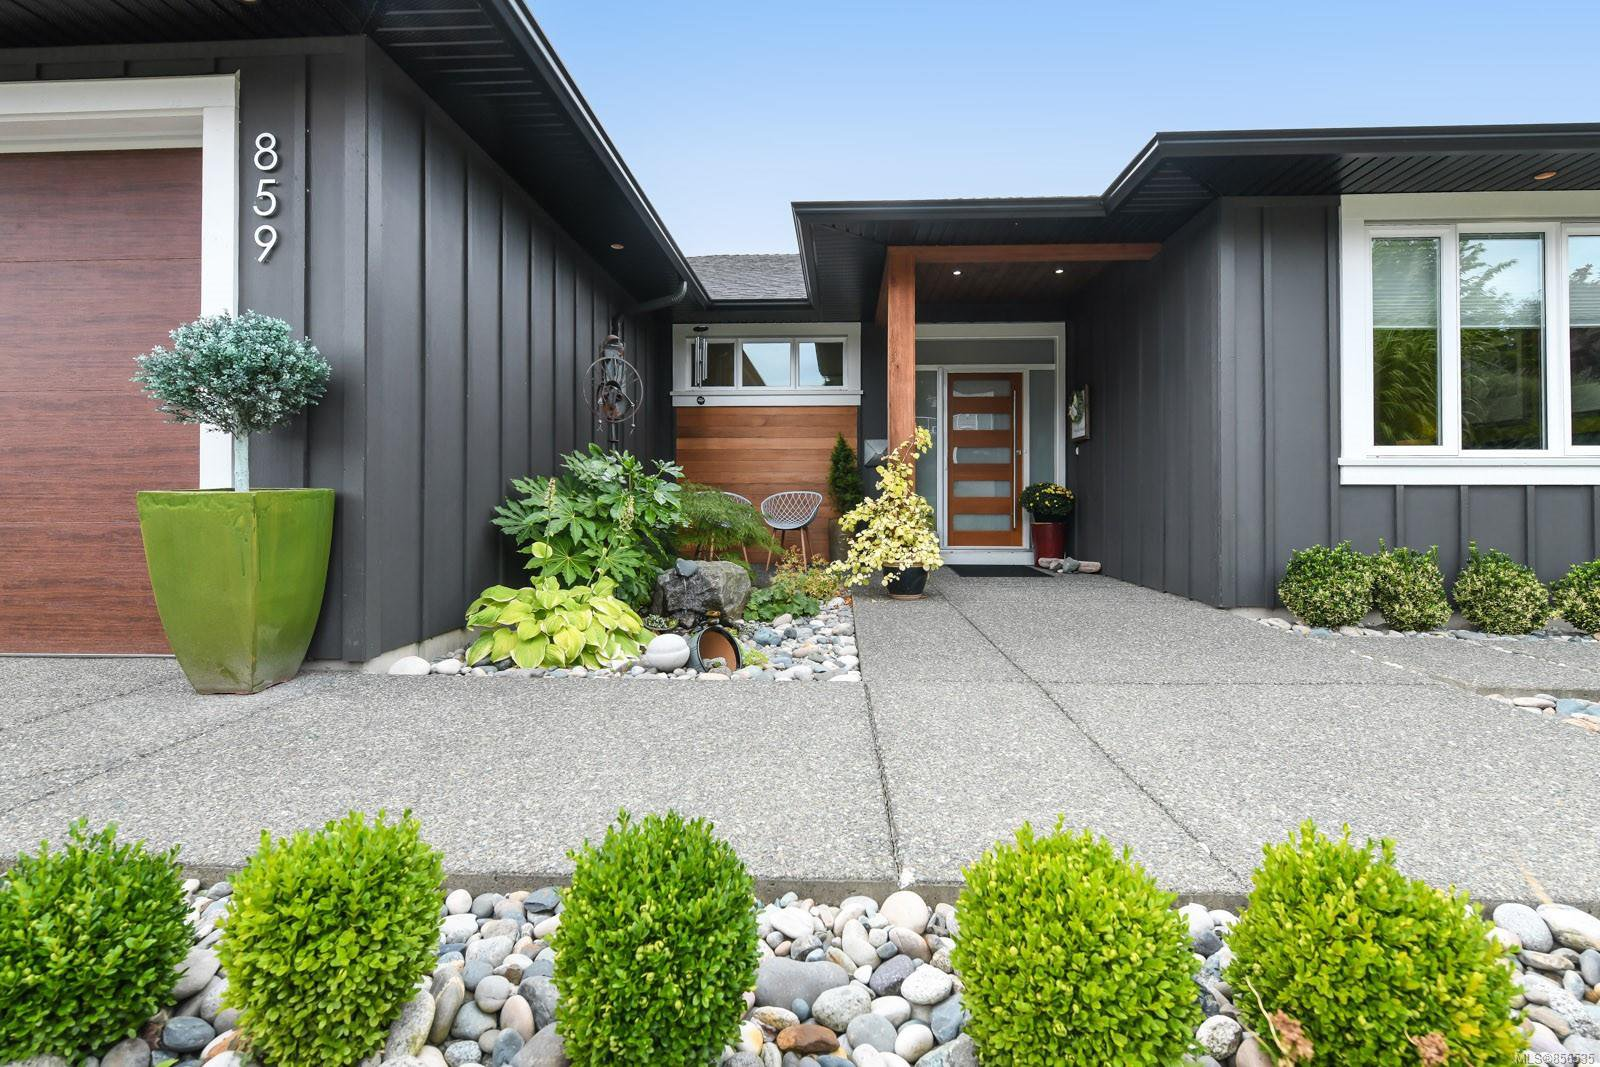 Main Photo: 859 Thorpe Ave in : CV Courtenay East House for sale (Comox Valley)  : MLS®# 856535